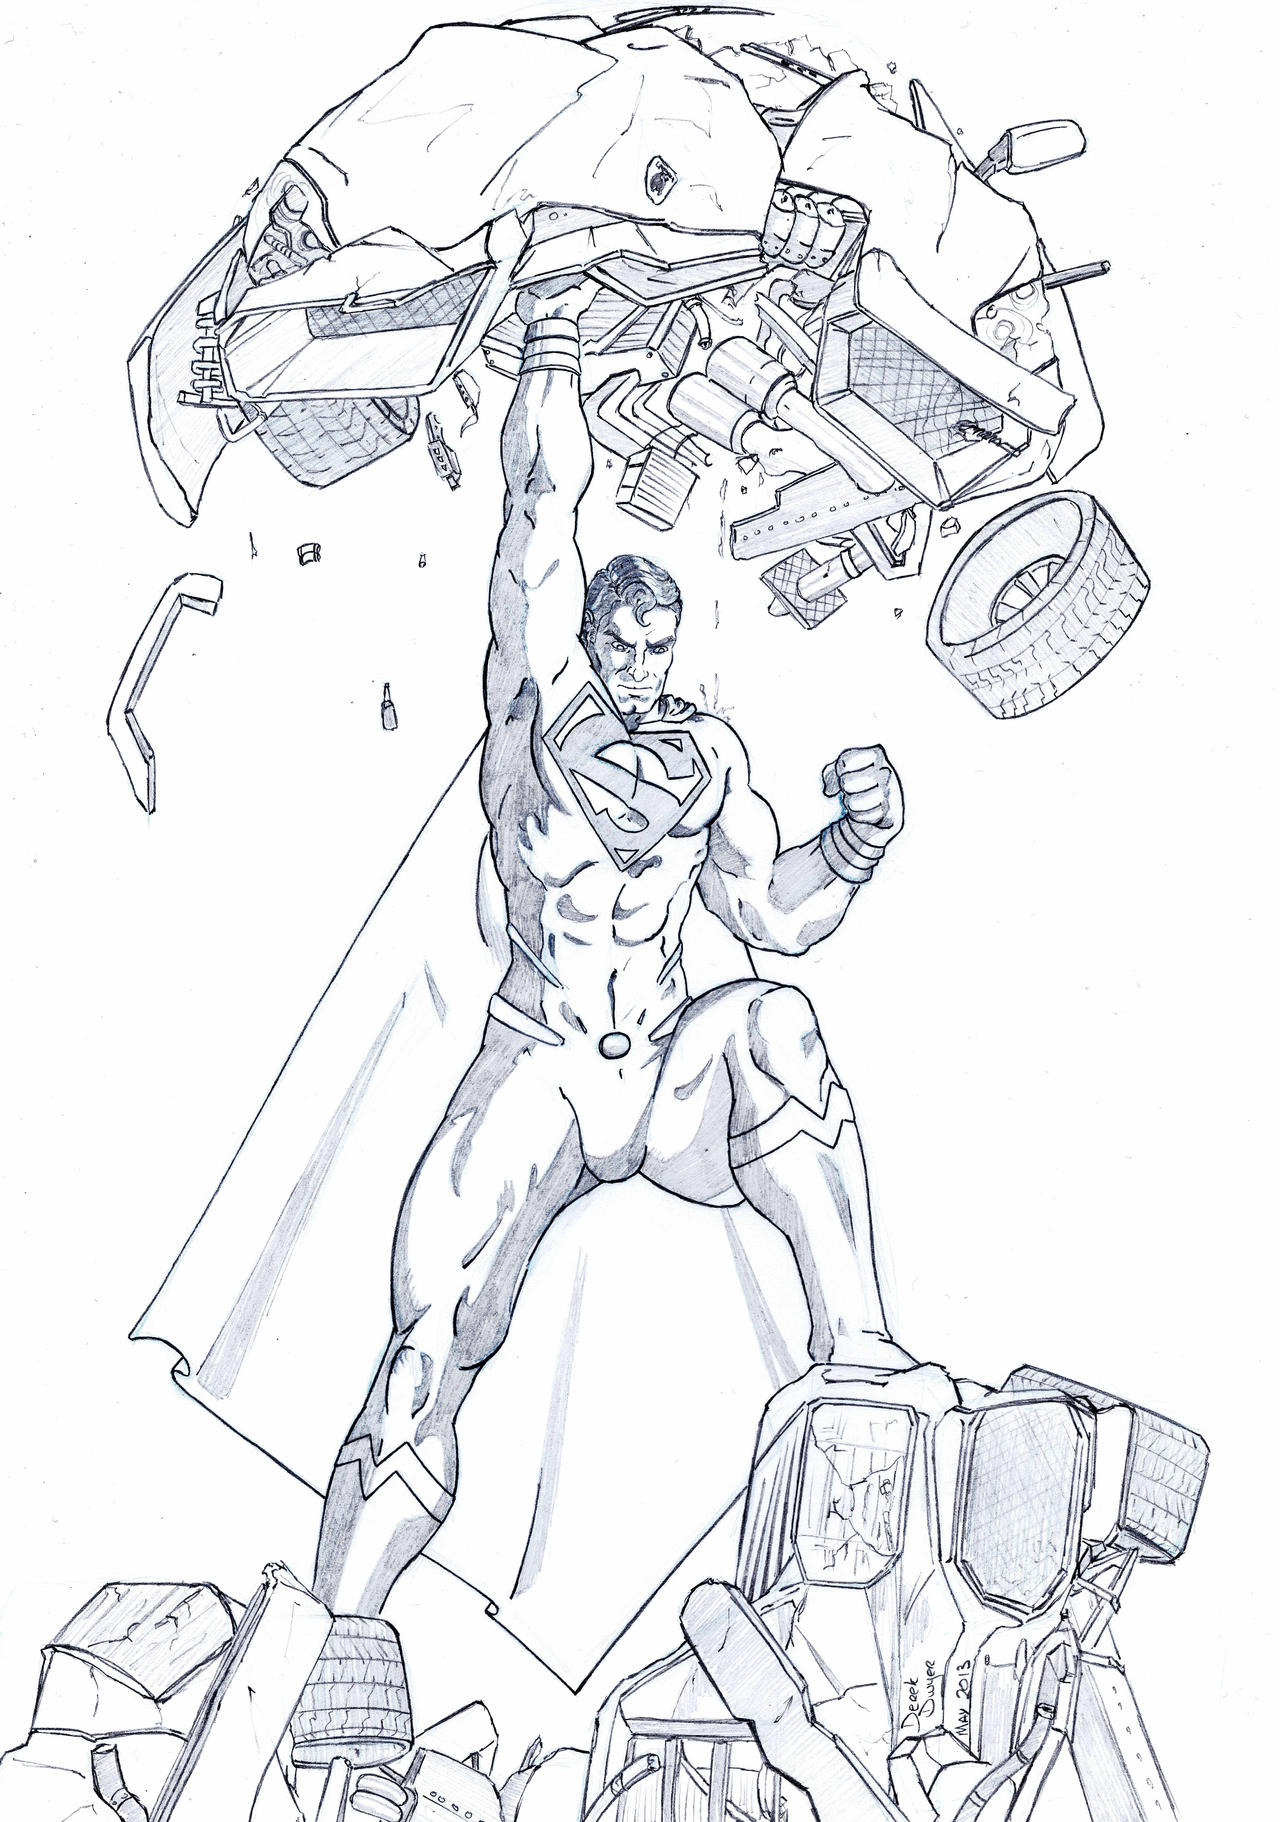 Superman man of steel by derekdwyer on deviantart for Man of steel coloring pages